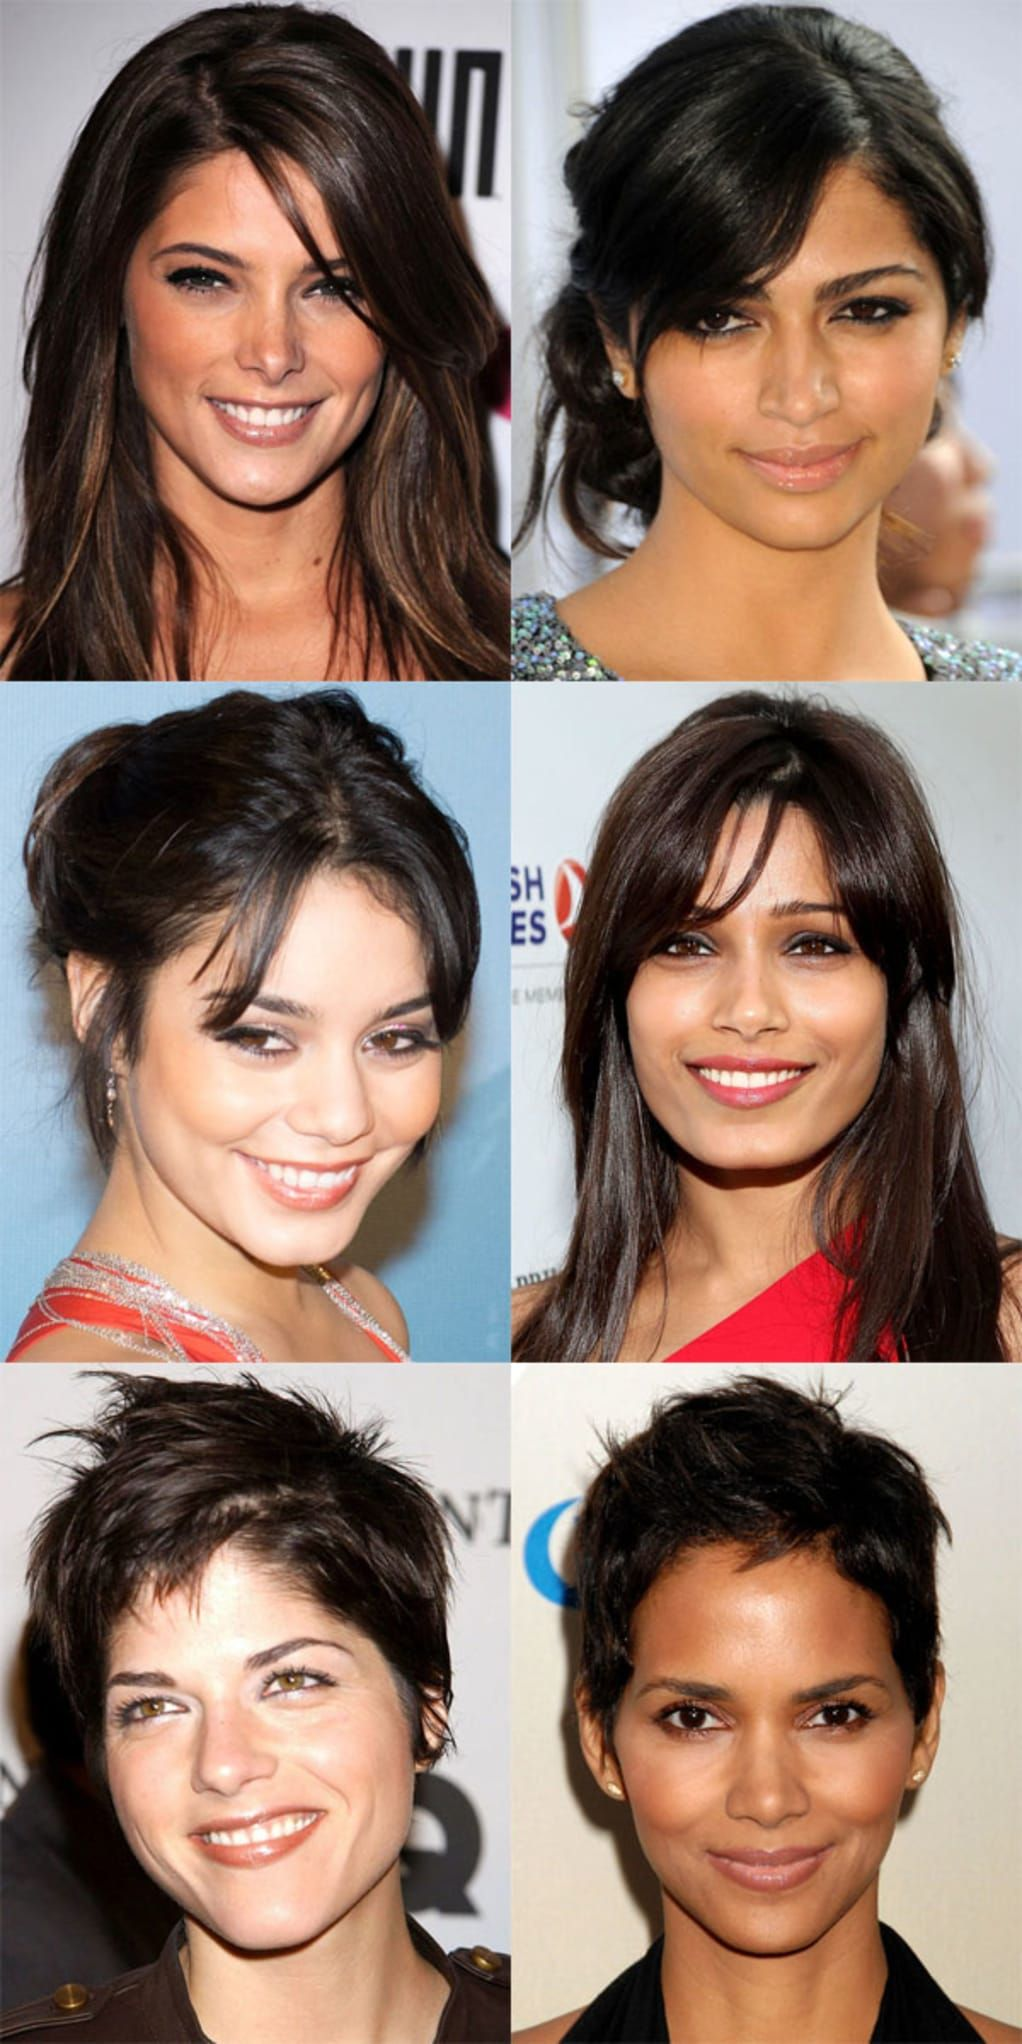 The Best And Worst Bangs For Diamond Faces Diamond Face Hairstyle Diamond Face Shape Hairstyles Face Shape Hairstyles